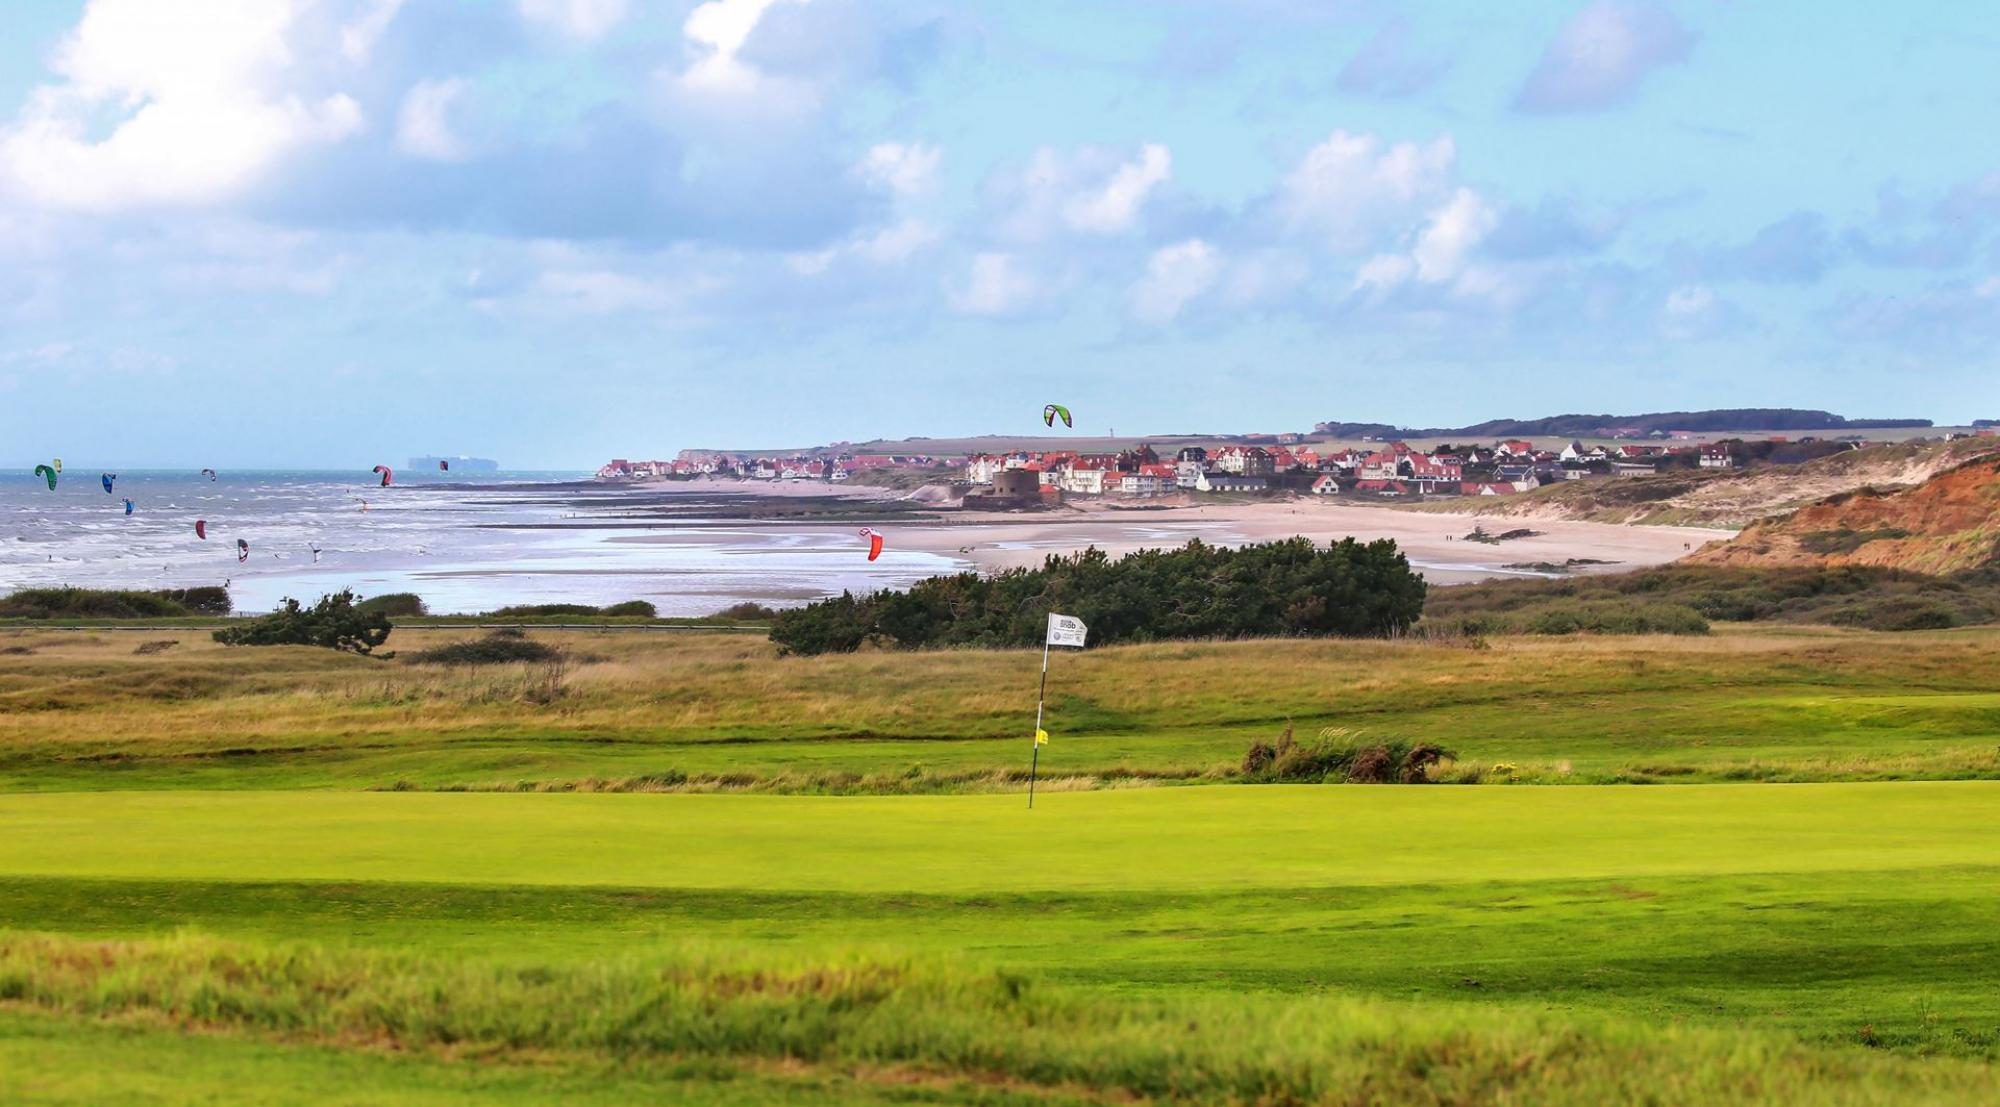 The Golf de Wimereux's picturesque golf course situated in impressive Northern France.